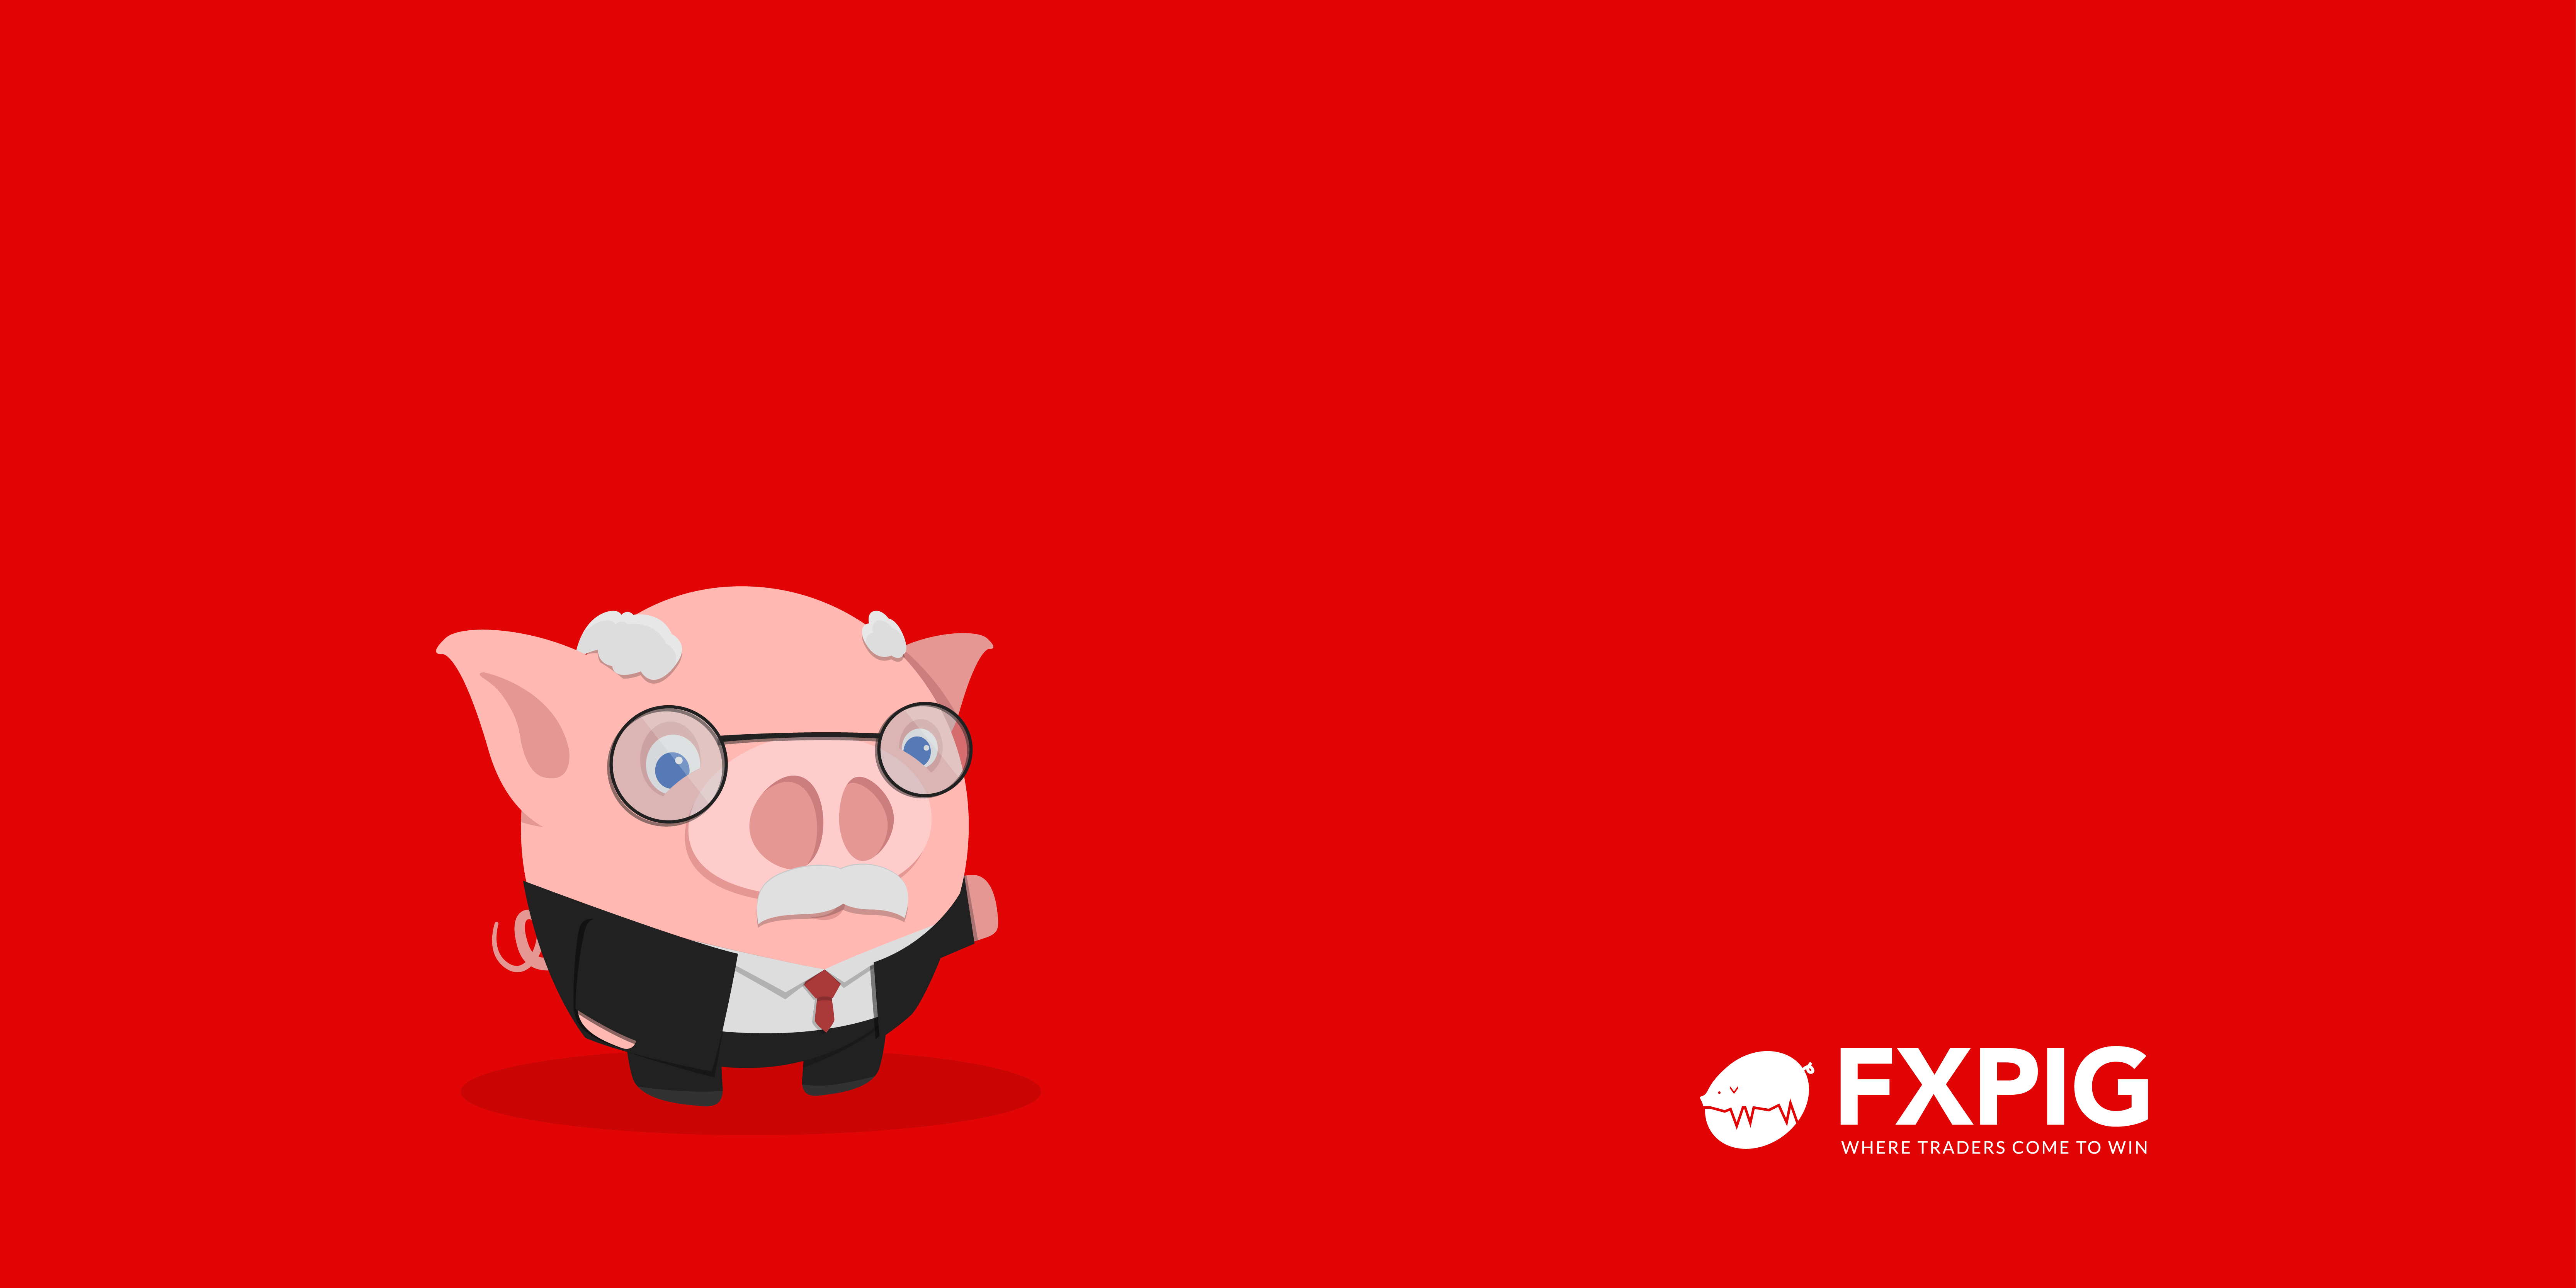 FOREX_trading-quote0407_FXPIG